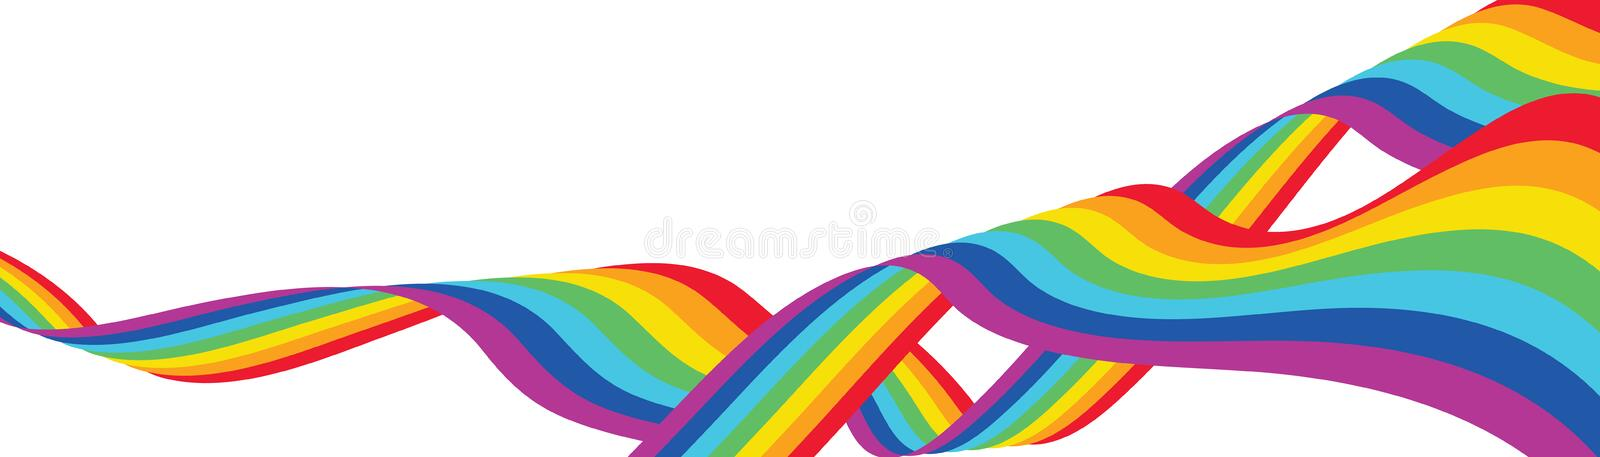 Rainbow line silk fly banner. This illustration is design abstract freedom rainbow line silk light fly like a flag and wave in banner size on white color royalty free illustration